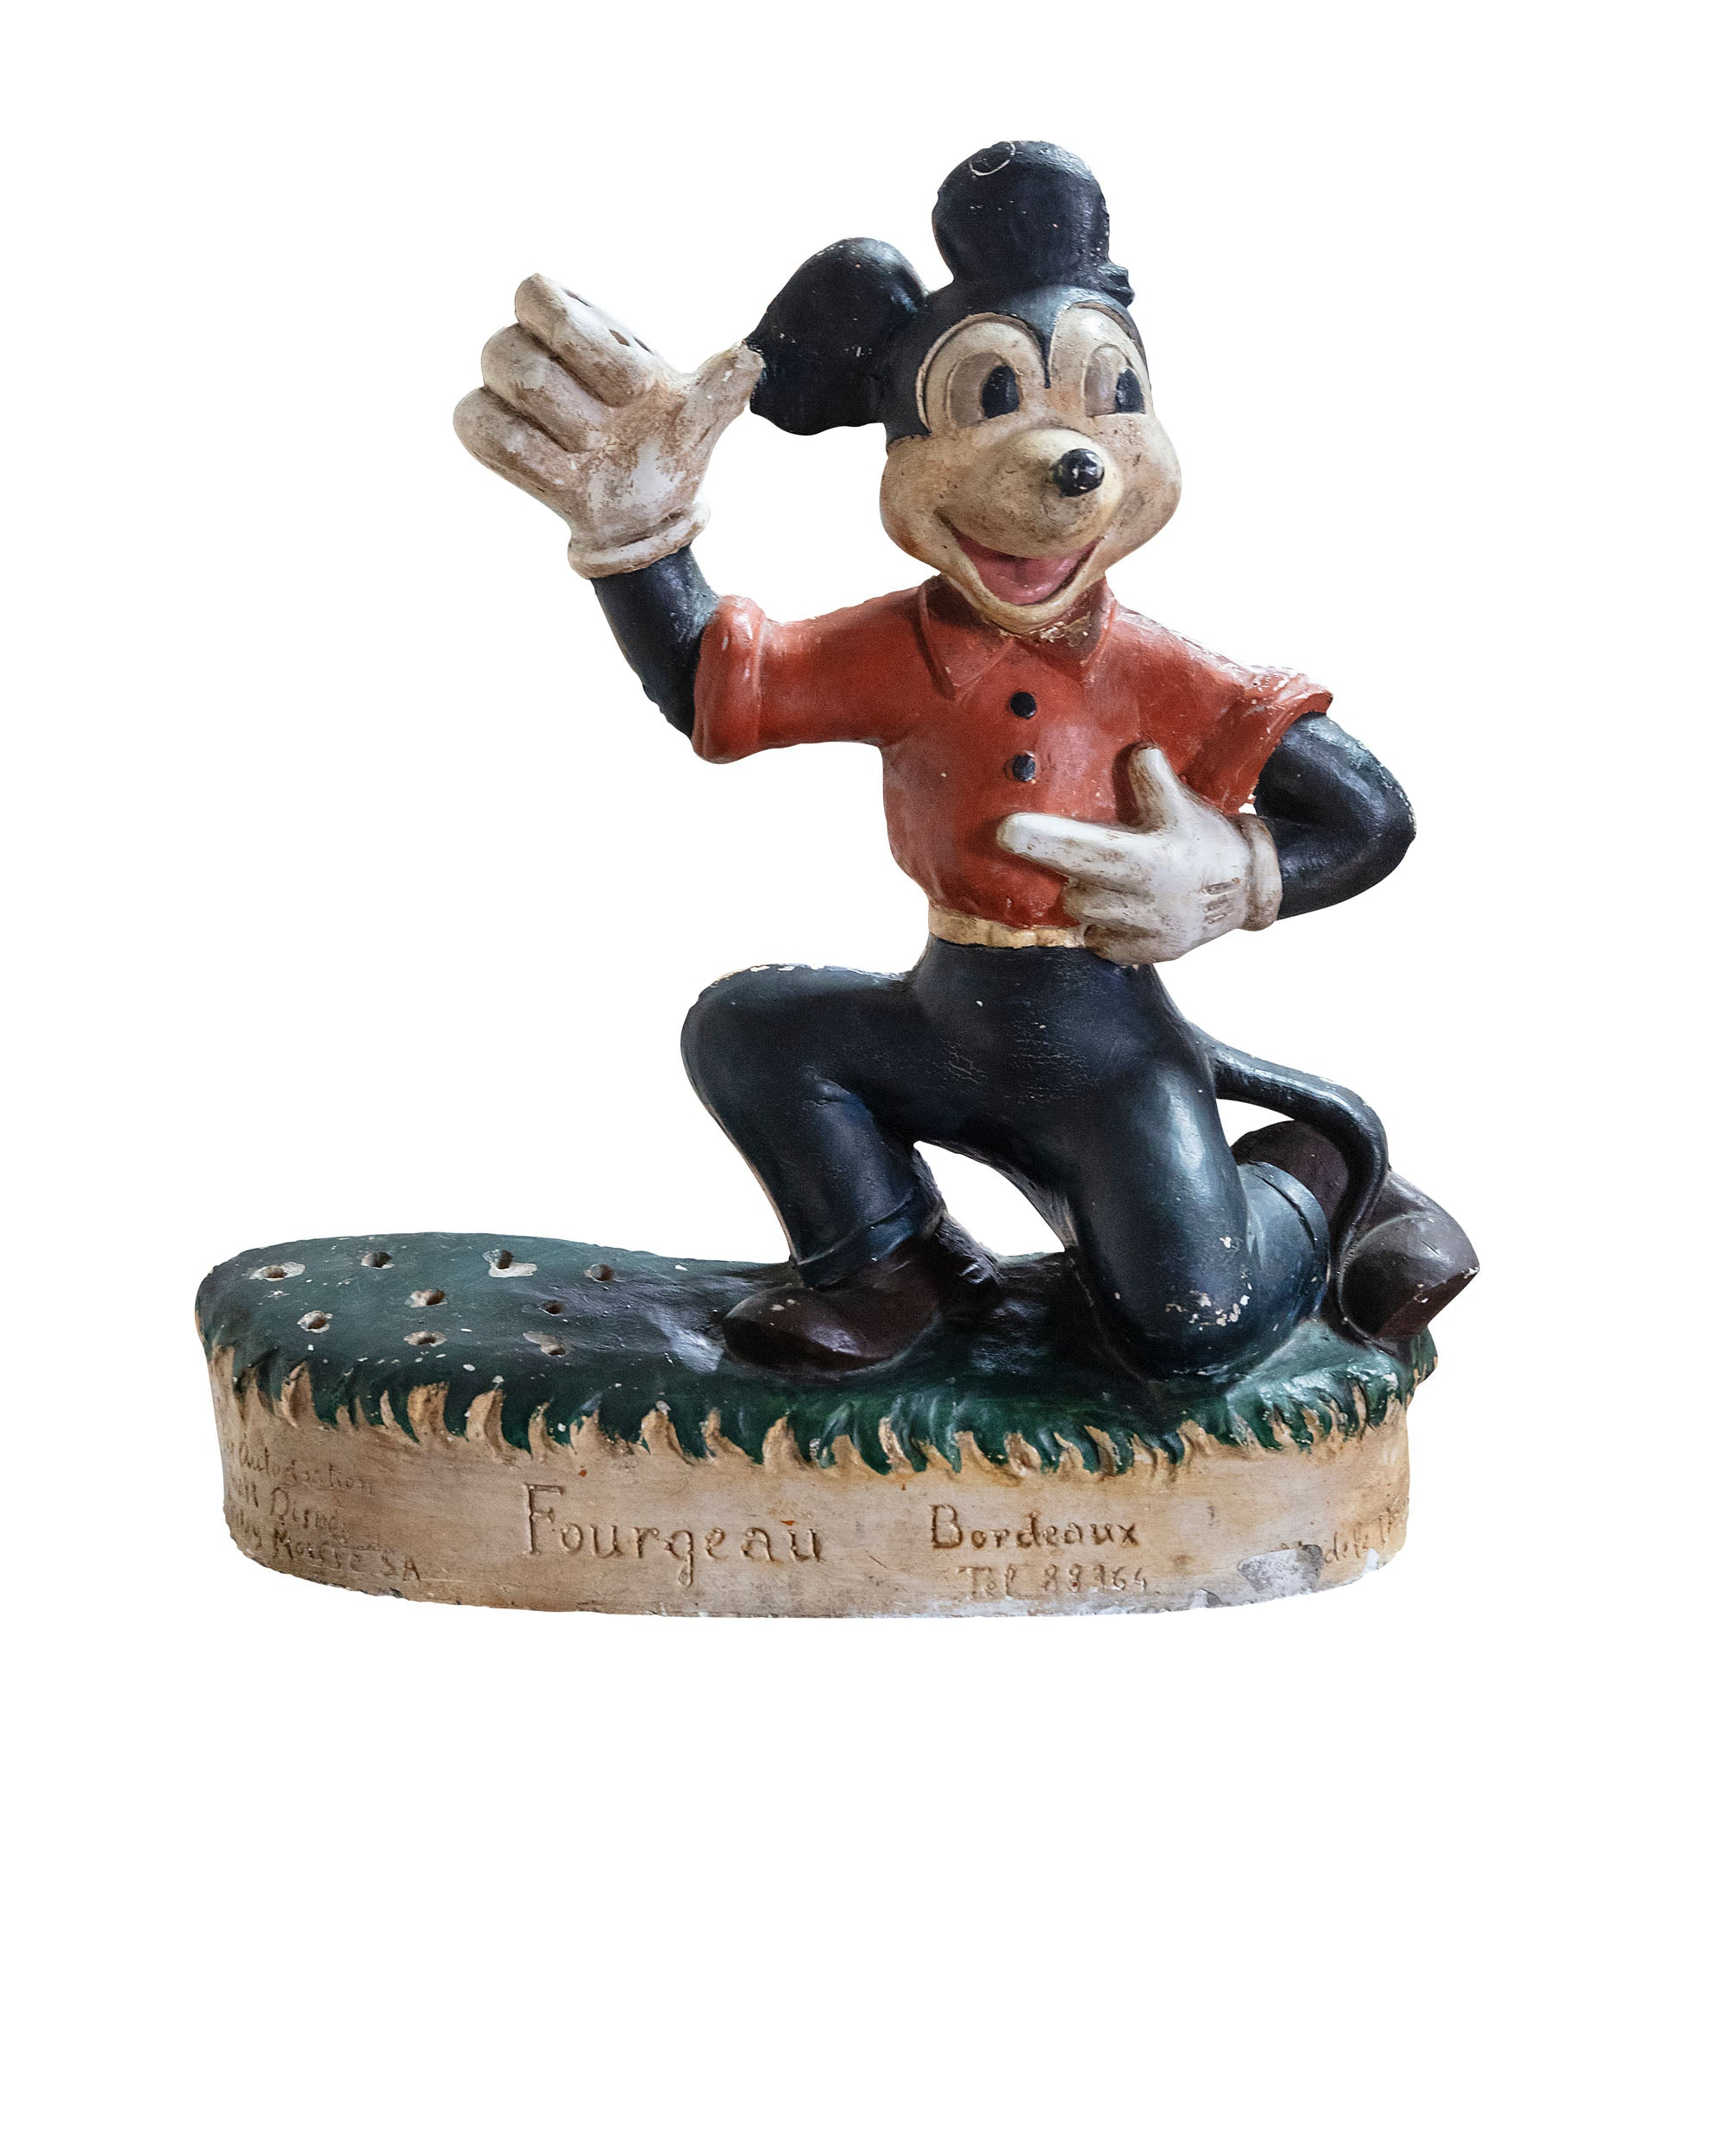 Mickey Mouse statue made of plaster to display lollipops. Year 1930/1940